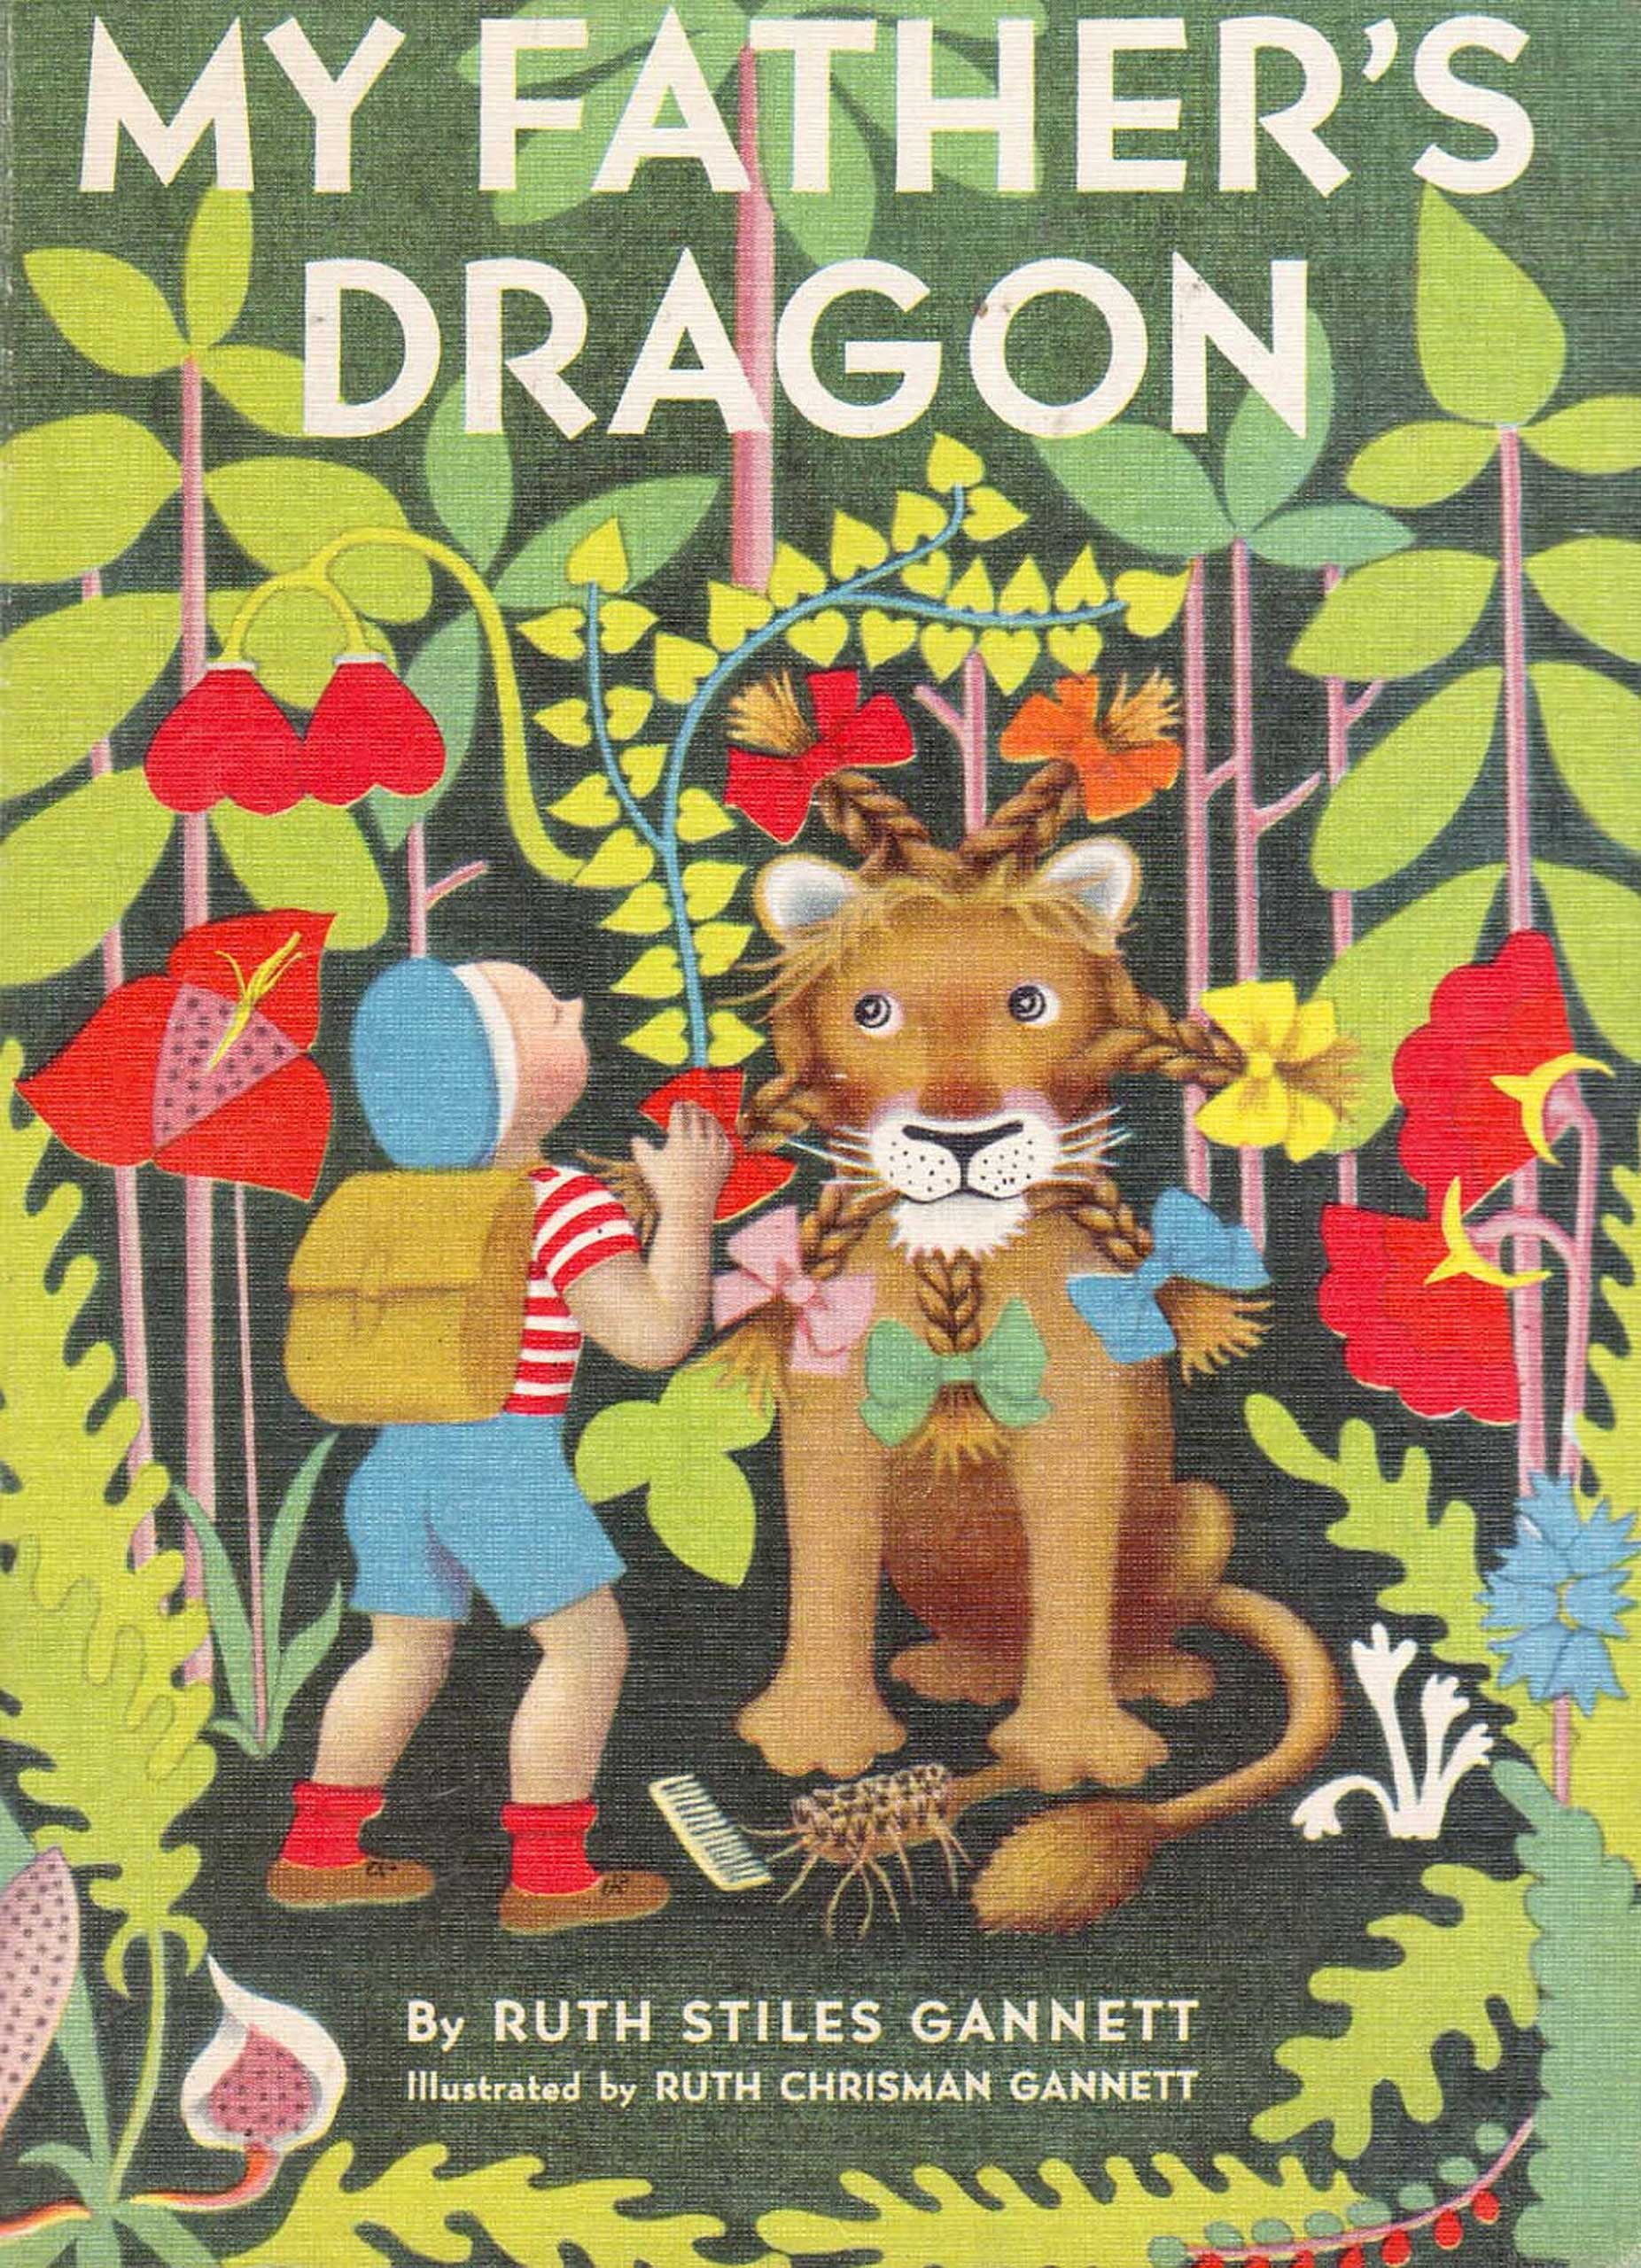 My Father's Dragon, by Ruth Stiles Gannett, illustrations by Ruth Chrisman Gannett.                                                                                                                            A child adventures to a dangerous island to free a baby dragon.                                                                                                                            Buy now: My Father's Dragon